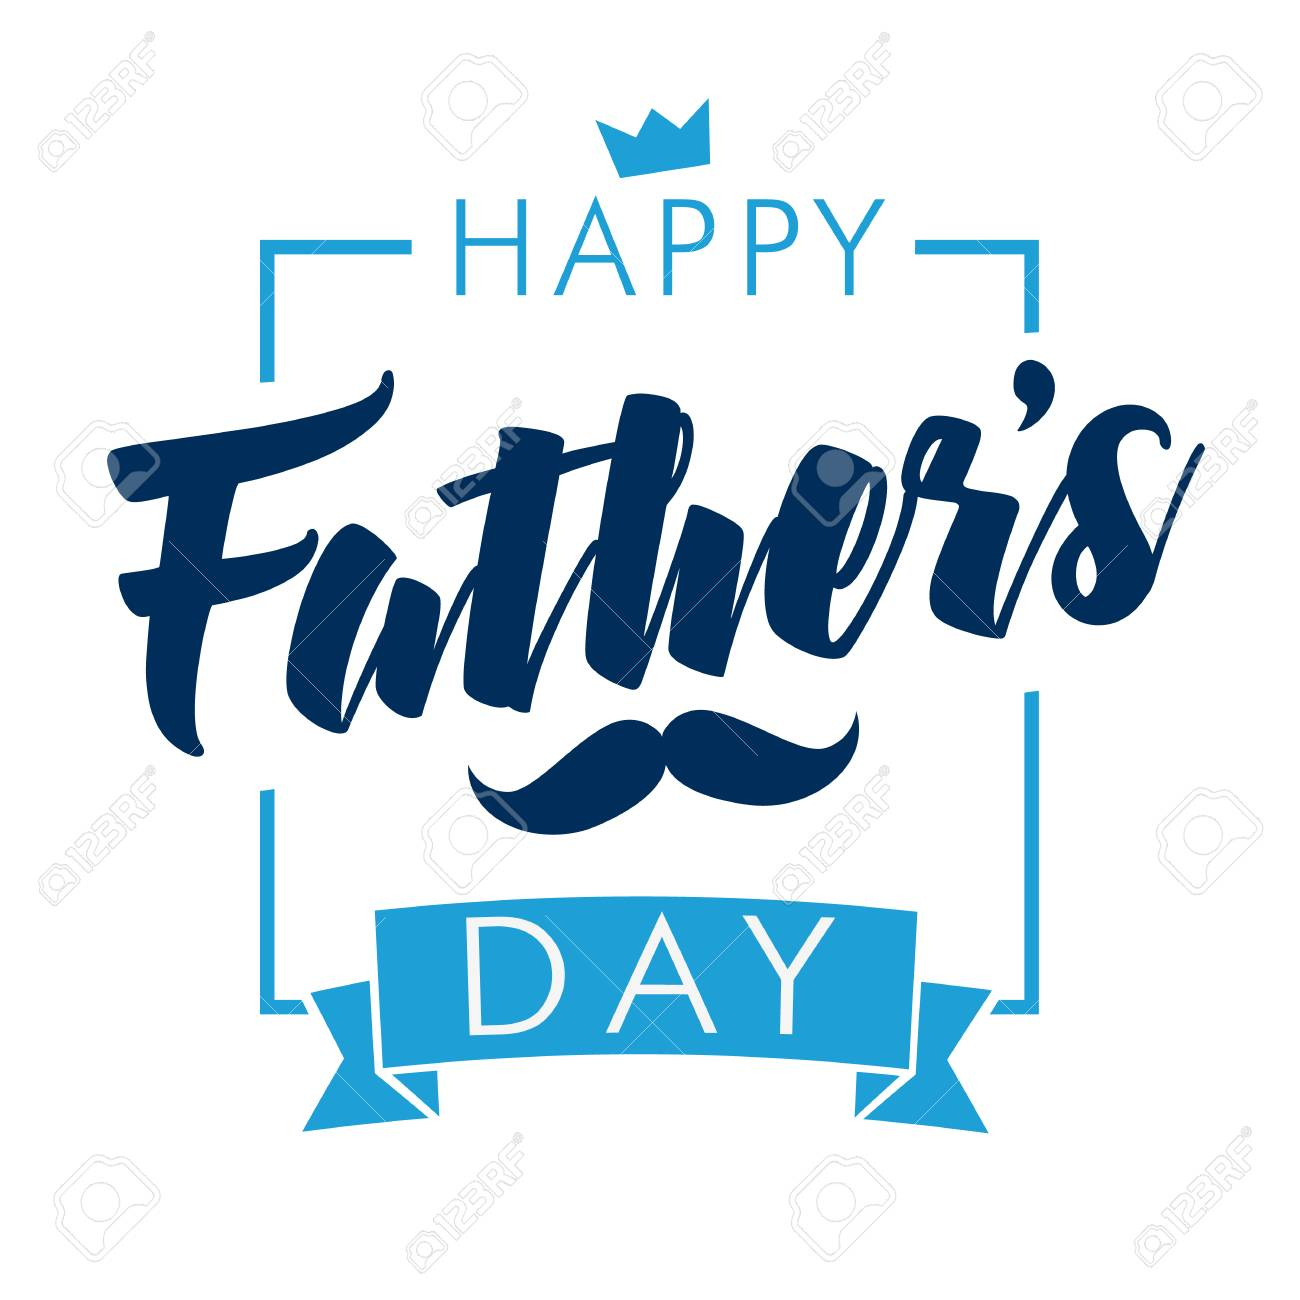 happy fathers day calligraphy